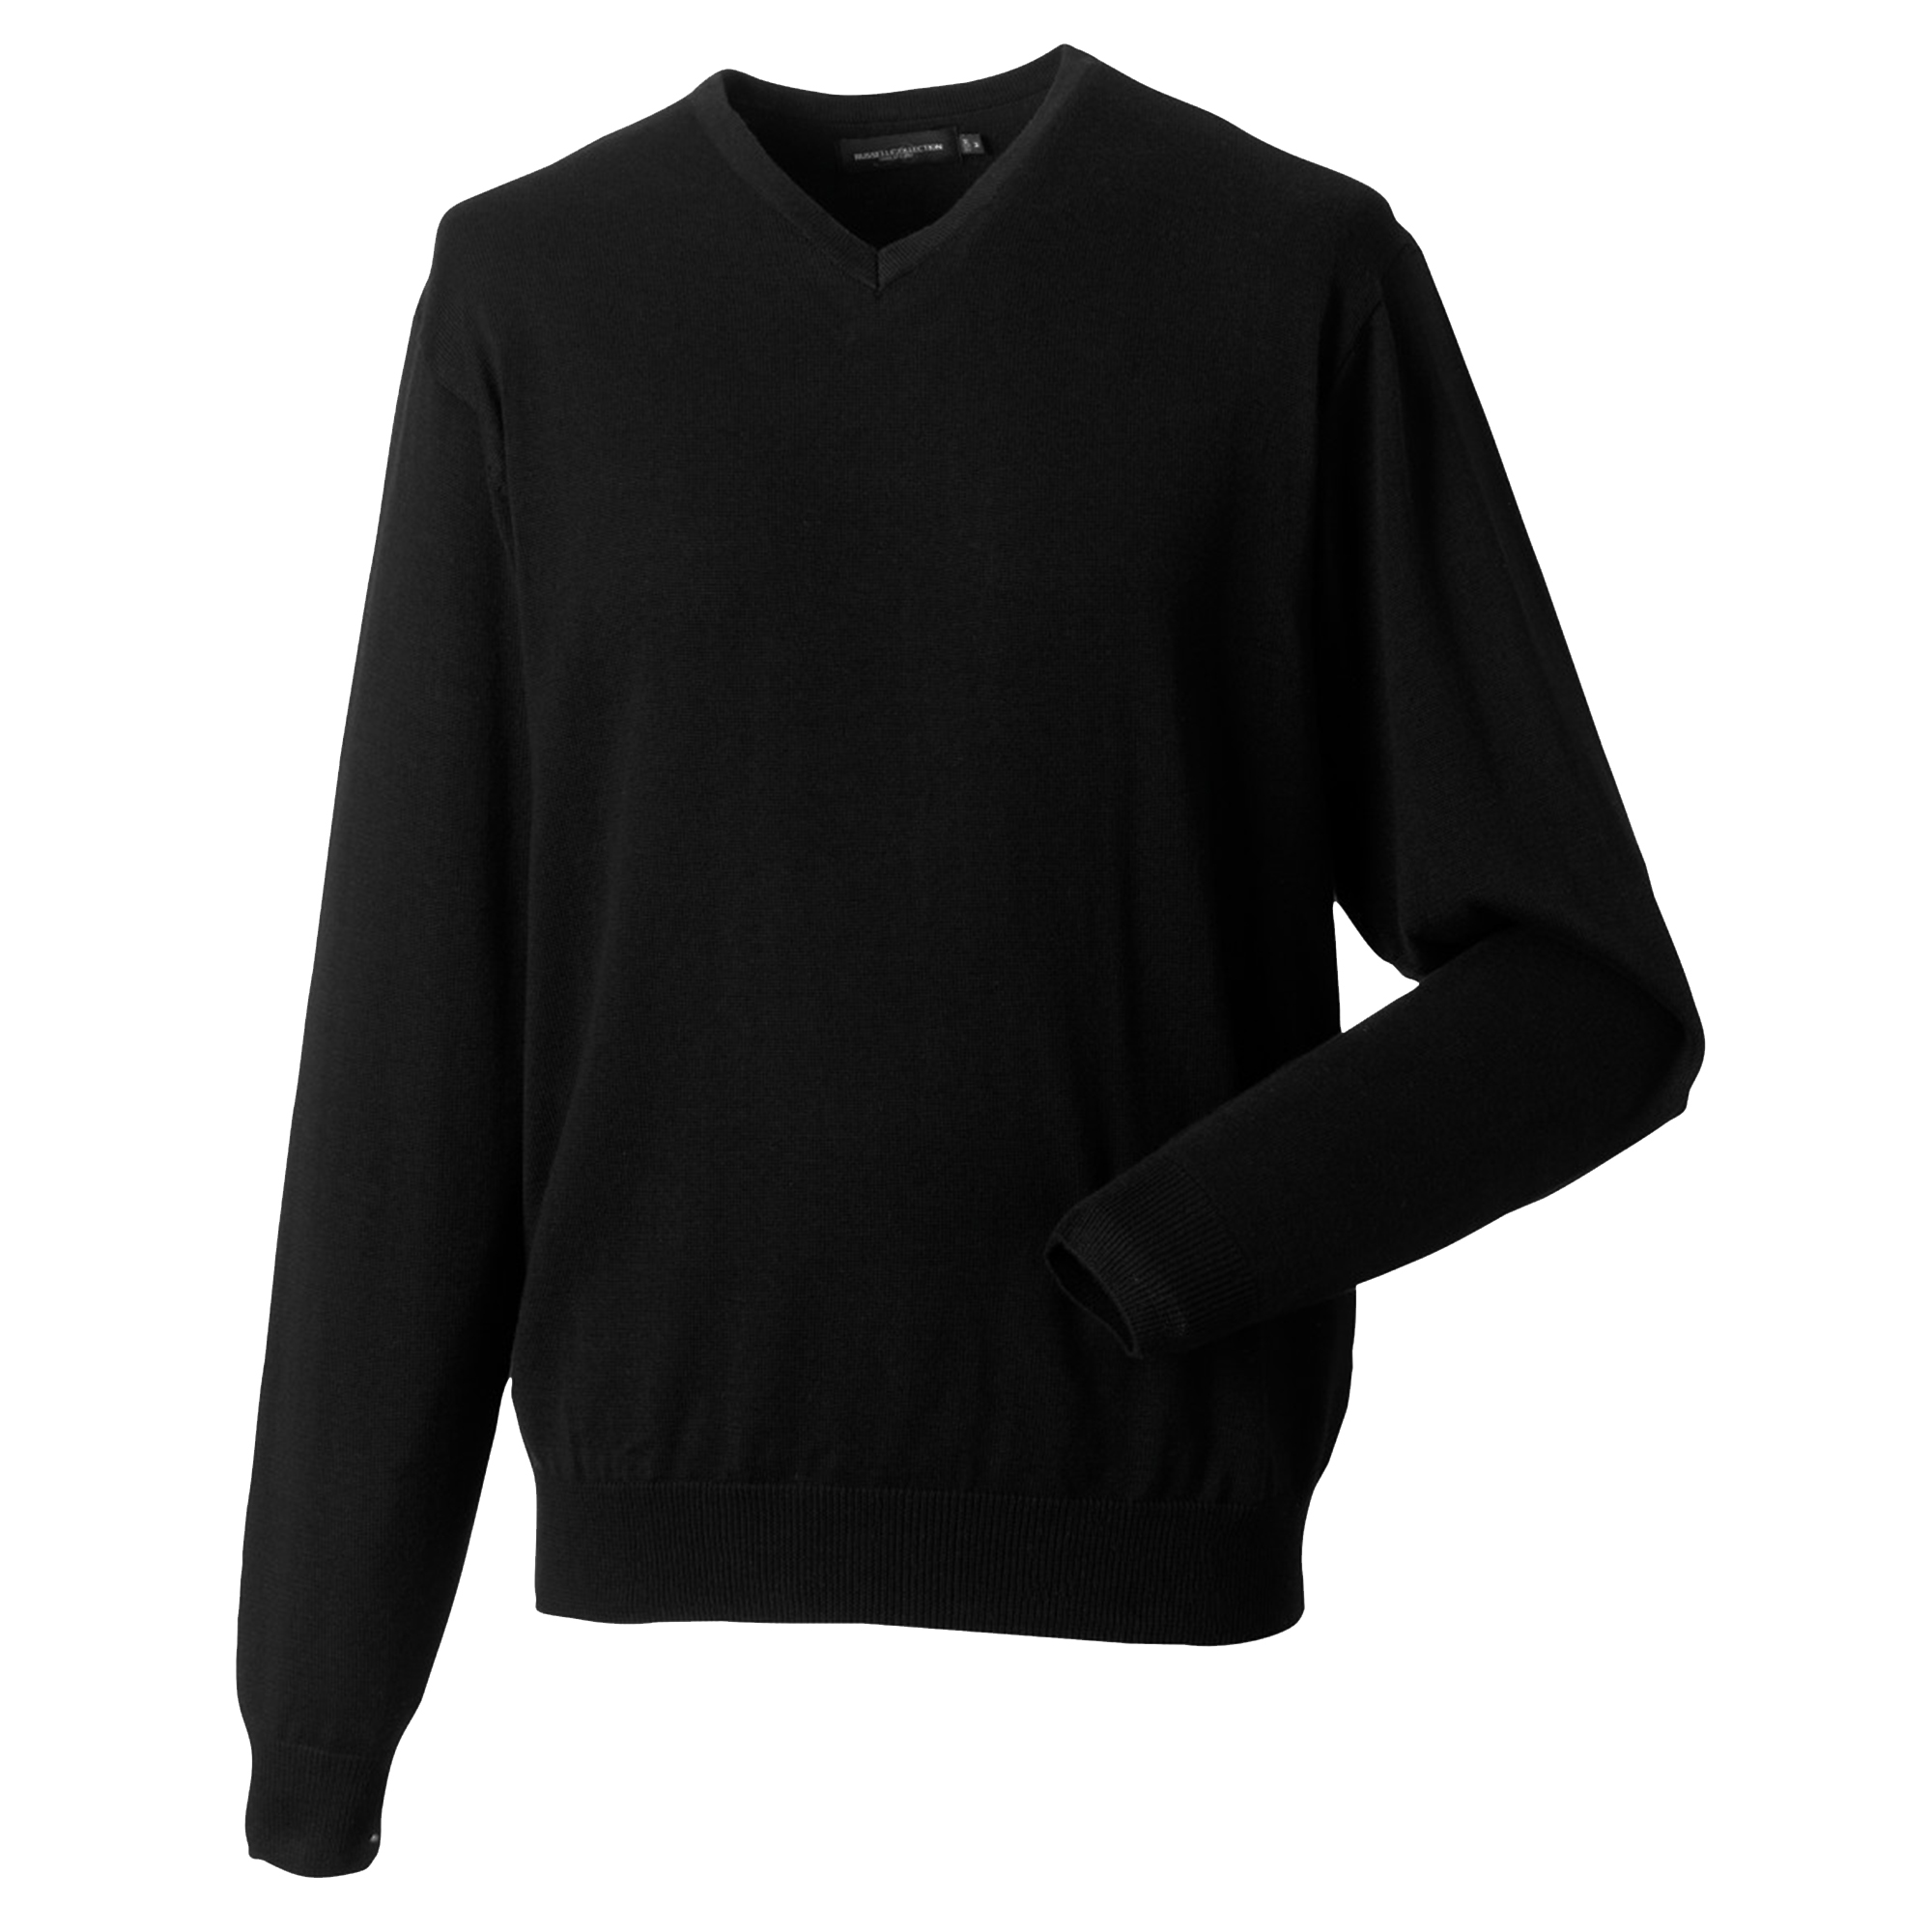 miniature 16 - Russell Collection - Pullover à col en V - Homme (XS-4XL) 2 couleurs (BC1012)